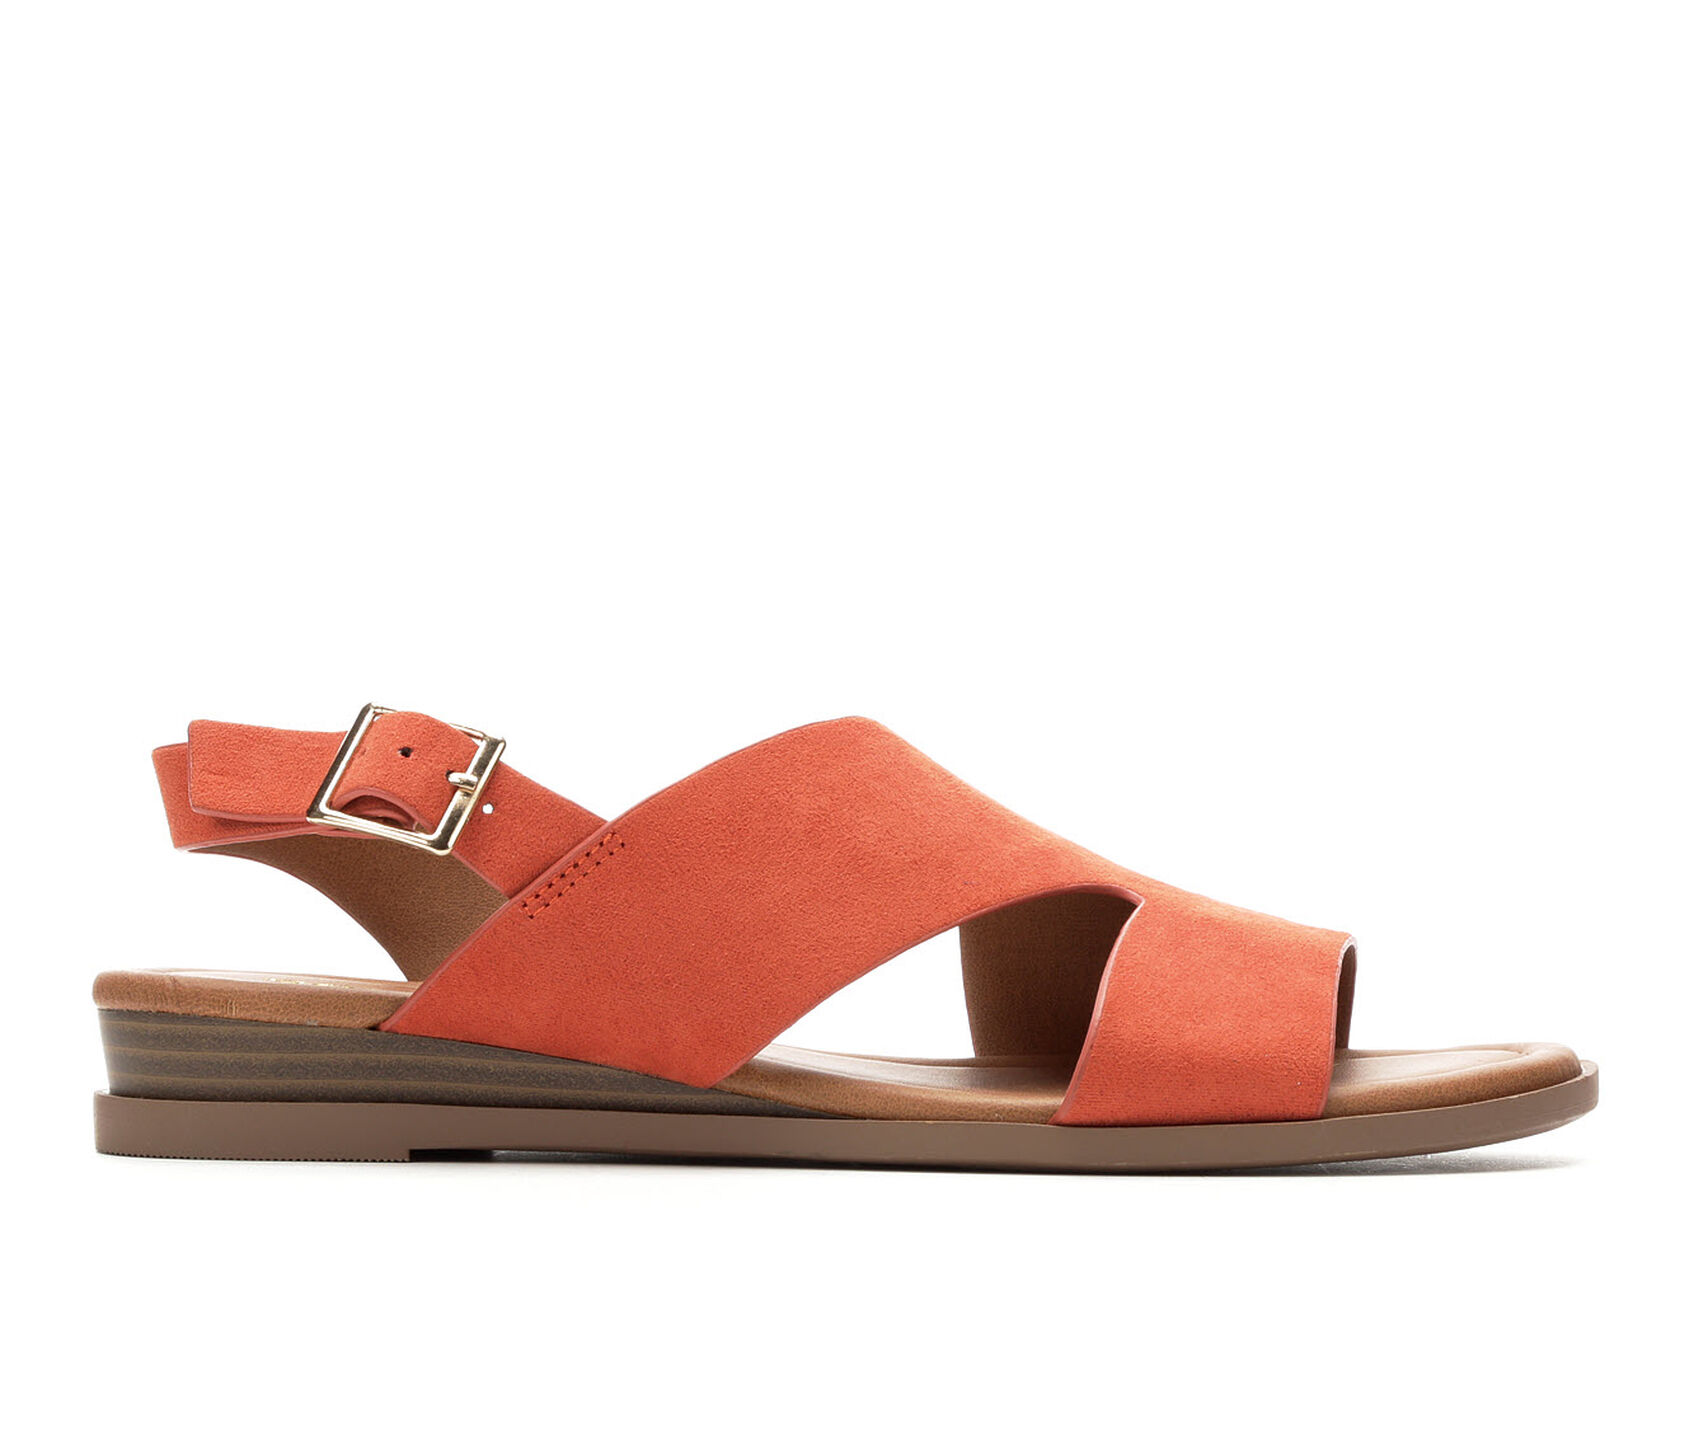 39a79bb3158 Women's Solanz Brooklyn Sandals